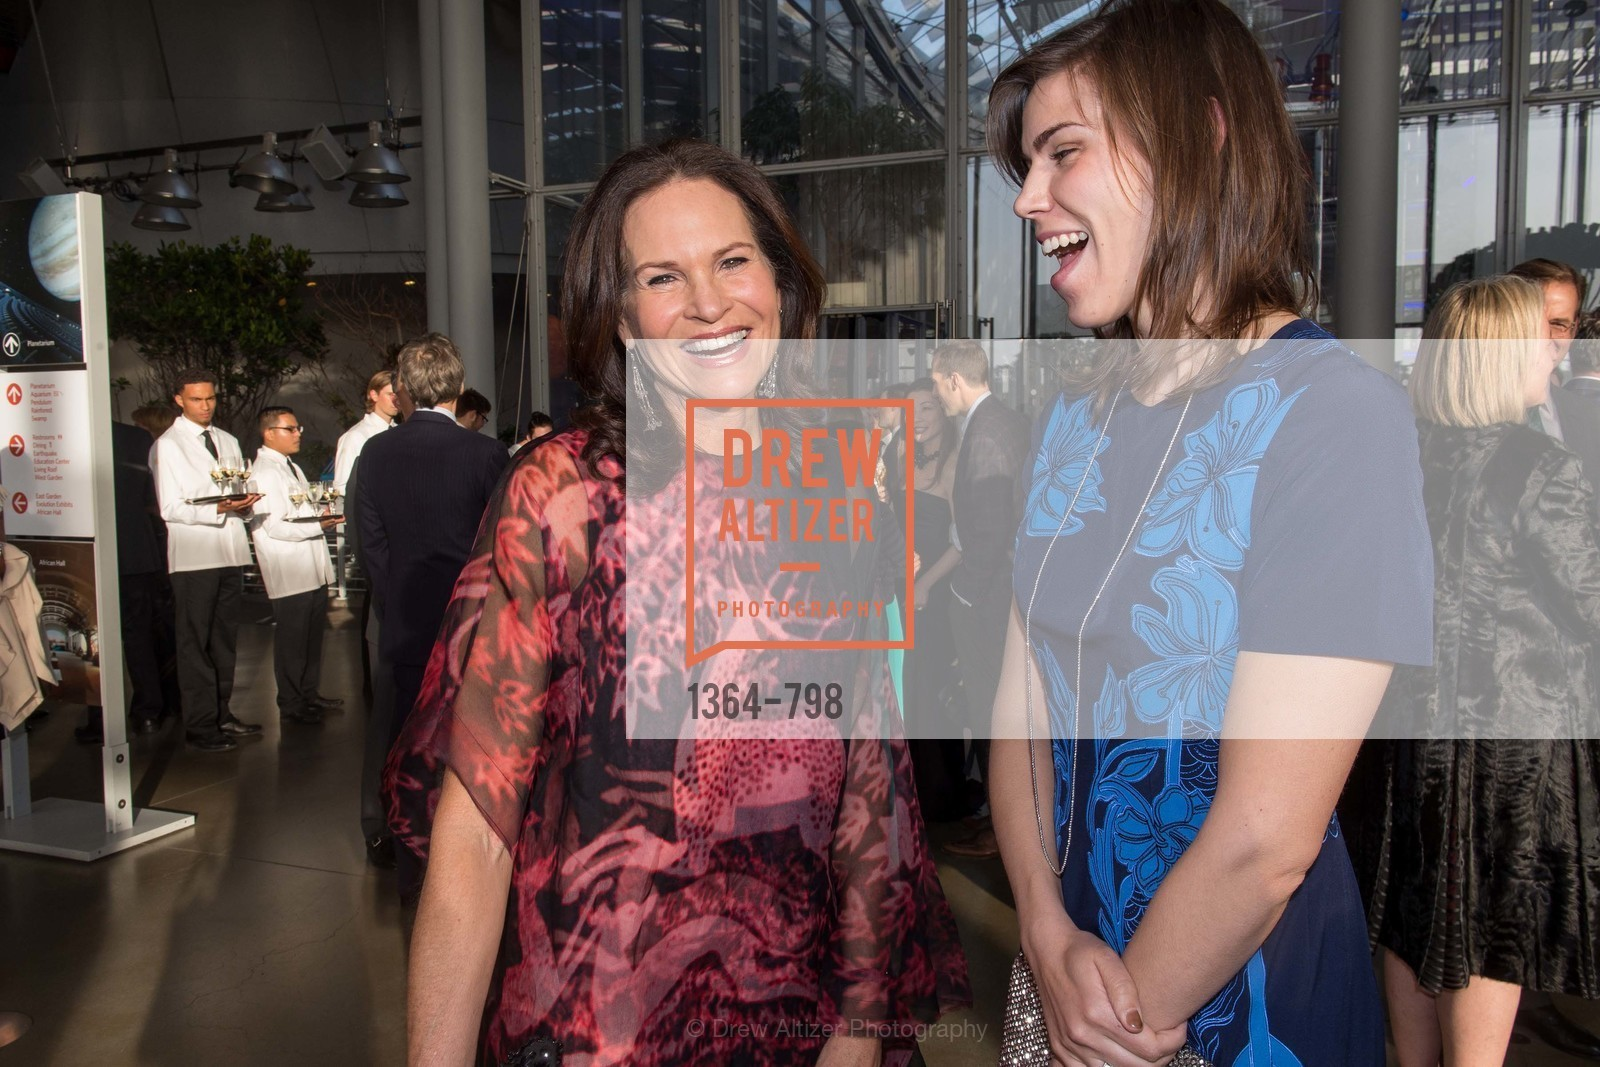 Randi Fisher, Nicole Schuetz, CALIFORNIA ACADEMY OF SCIENCES - Big Bang Gala 2015, US, April 24th, 2015,Drew Altizer, Drew Altizer Photography, full-service event agency, private events, San Francisco photographer, photographer California